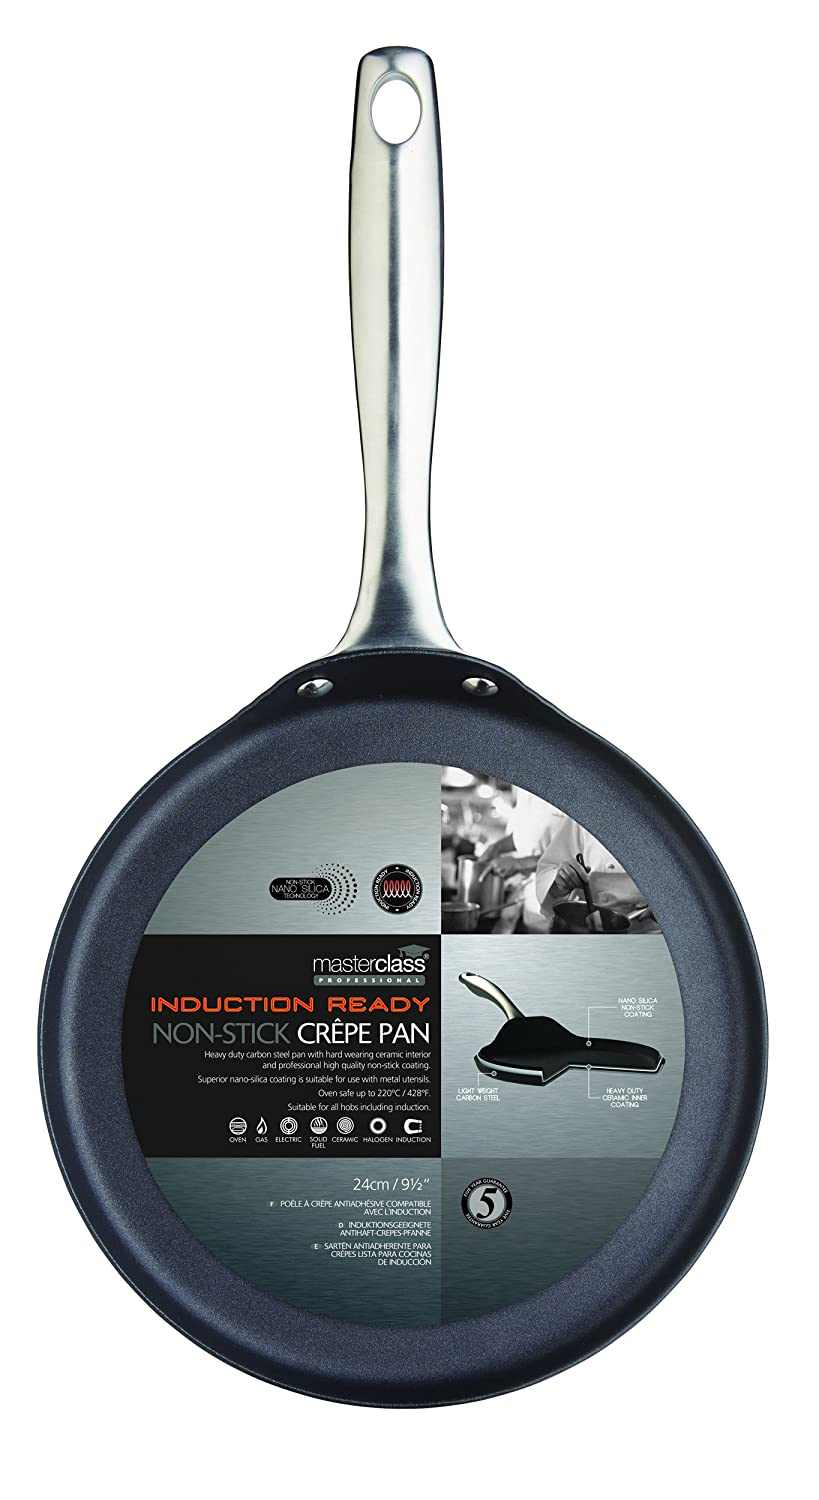 Amazon.com: Kitchencraft Non-stick Crepe Pan Master Class, Steel, Black, 24 x 12 x 16cm: Kitchen & Dining